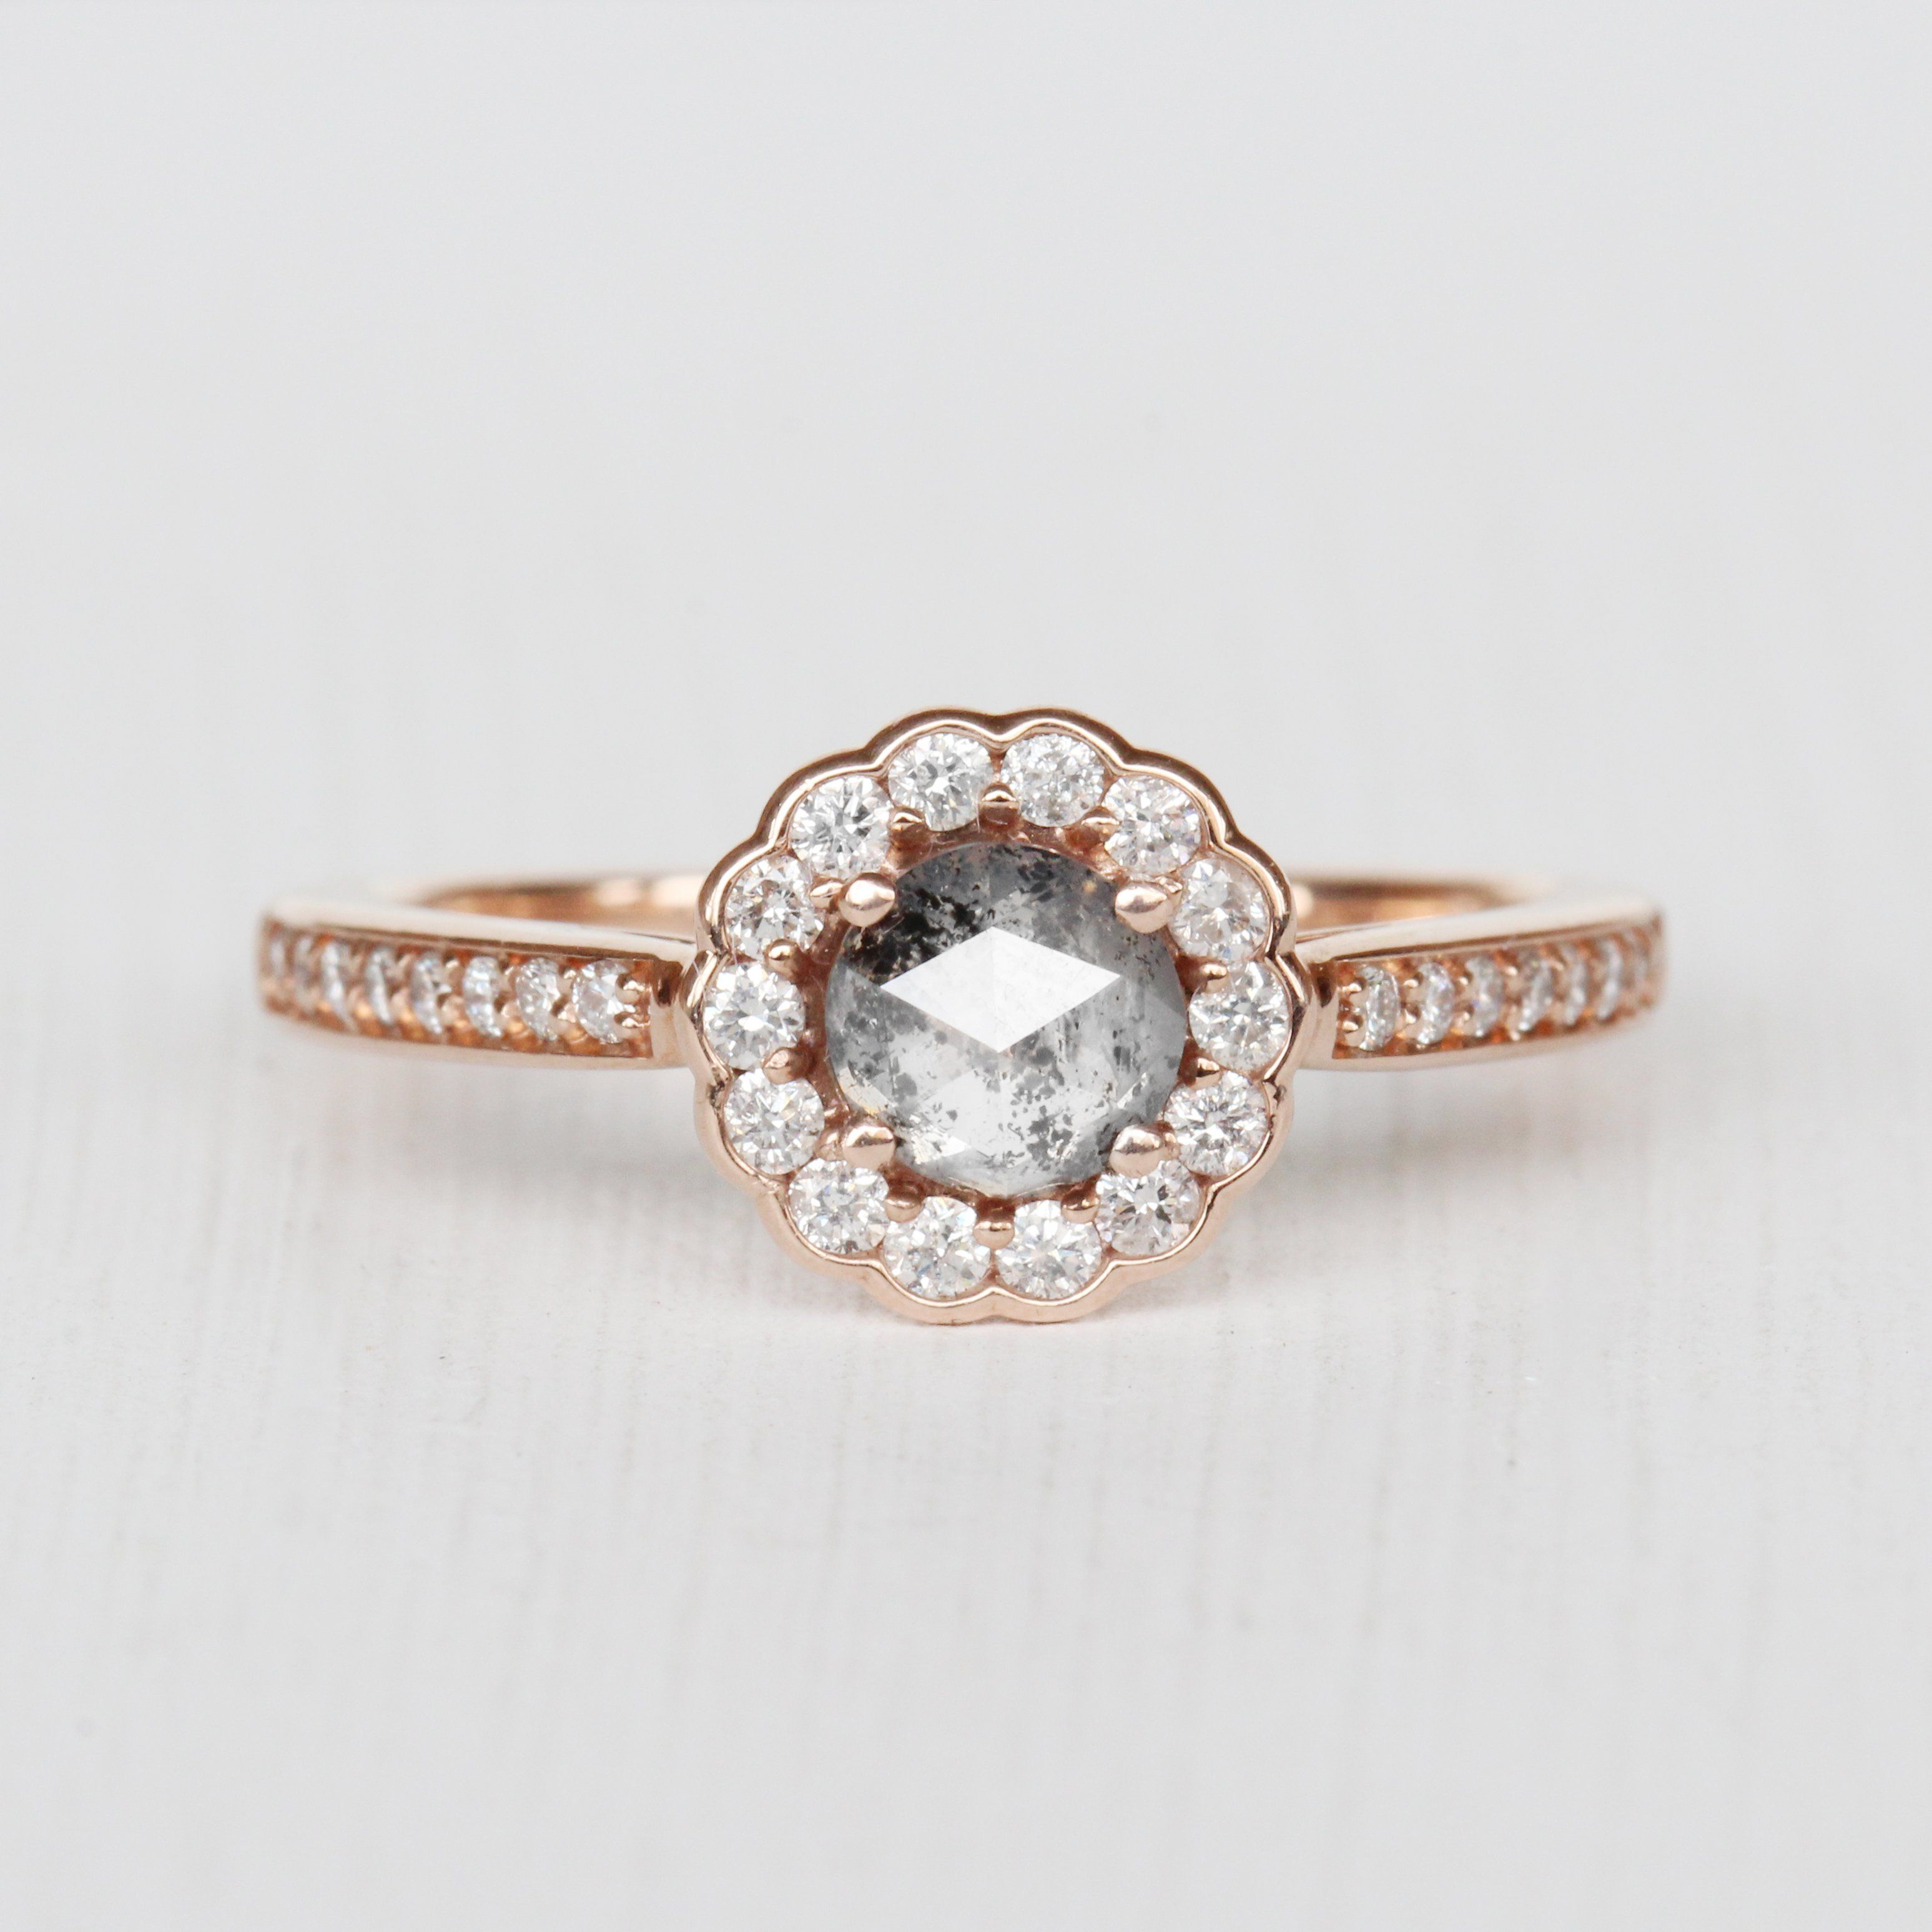 Poppy Ring With A Celestial Diamond In 10k Rose Gold Ready To Size And Ship Rose Gold Poppy Ring Gem Engagement Rings